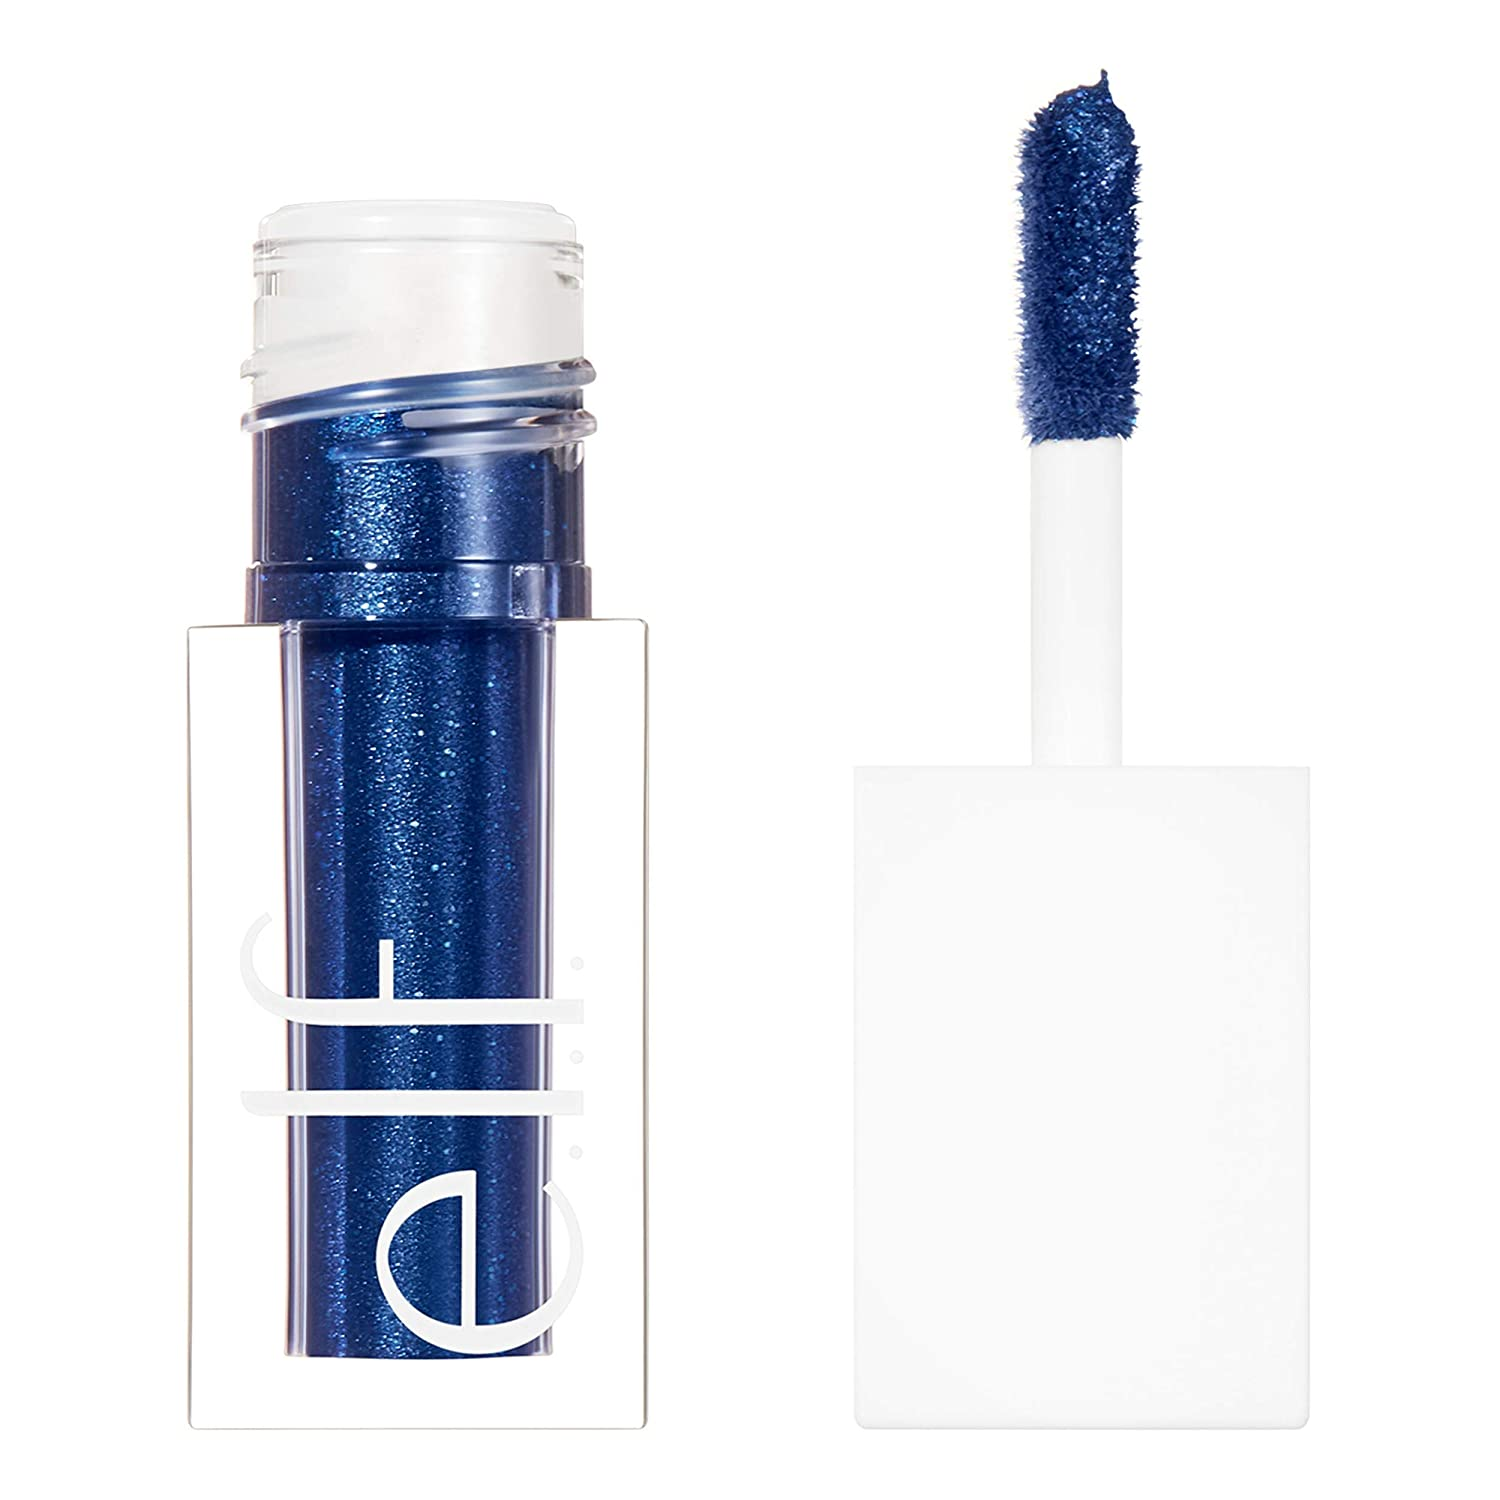 Amazon.com : e.l.f. Cosmetics Liquid Glitter Gel Eyeshadow, Ocean ...